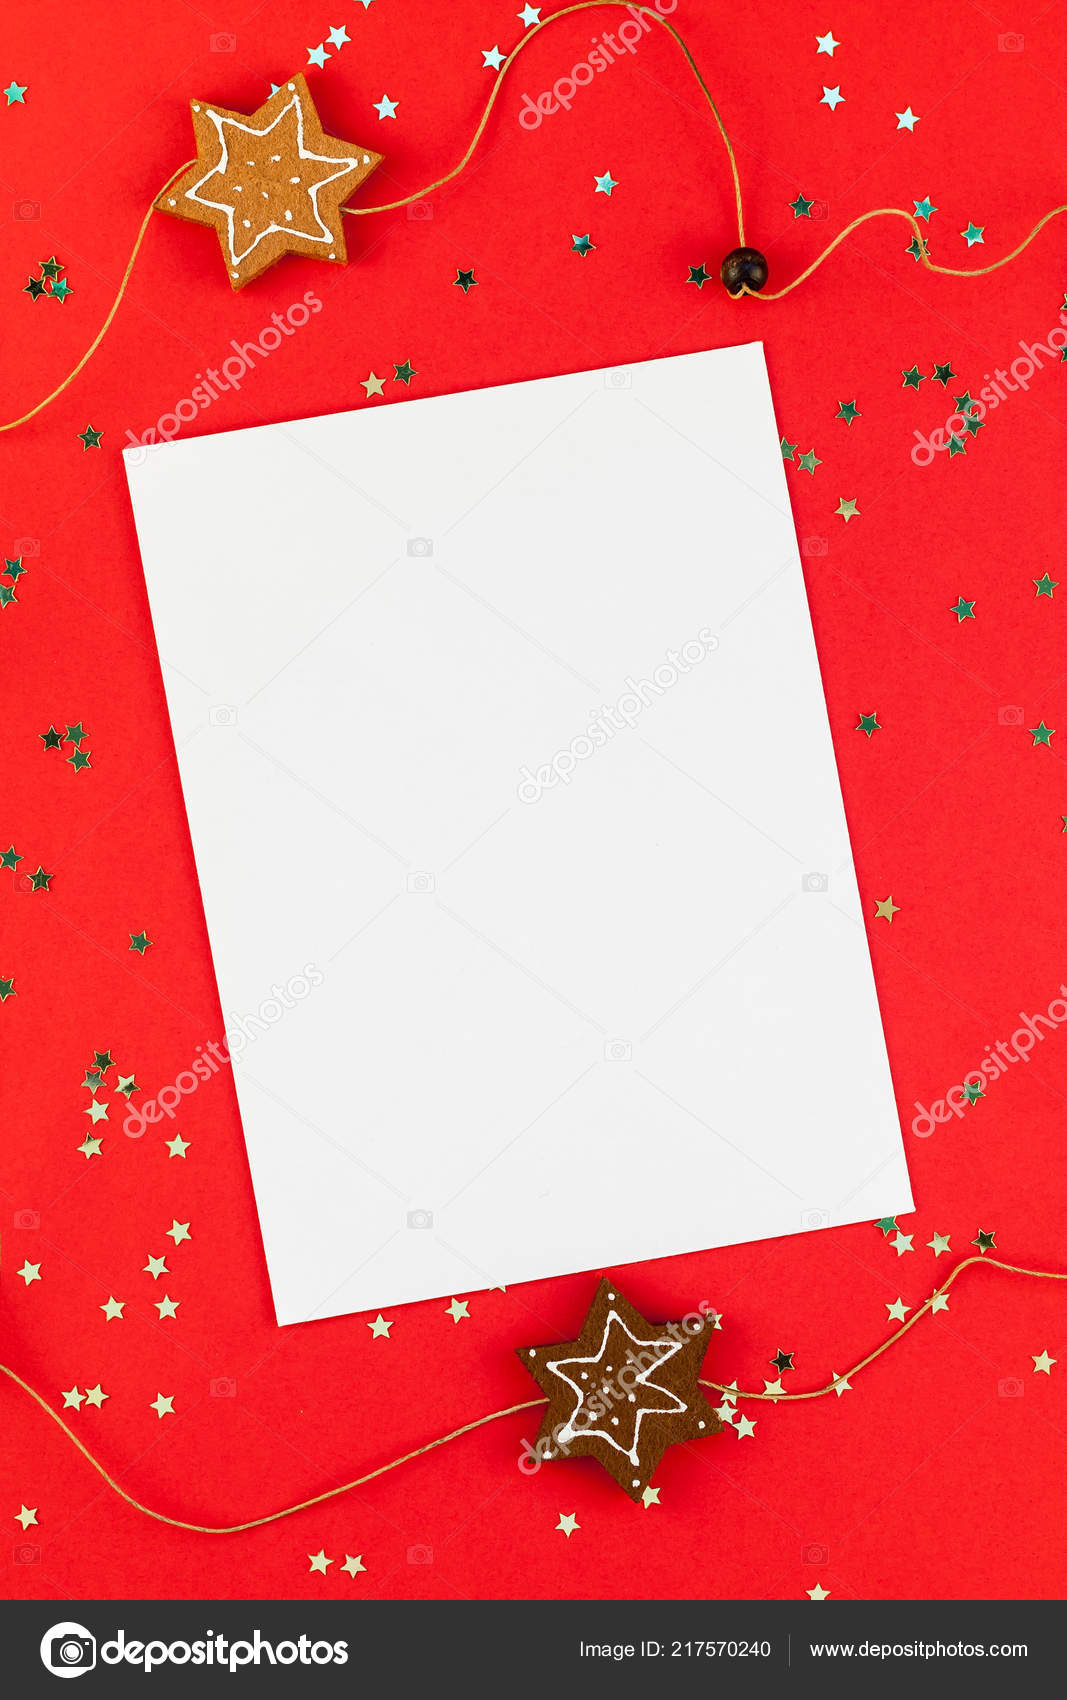 Creative New Year Christmas Greetings Letter Mockup Flat Lay Top